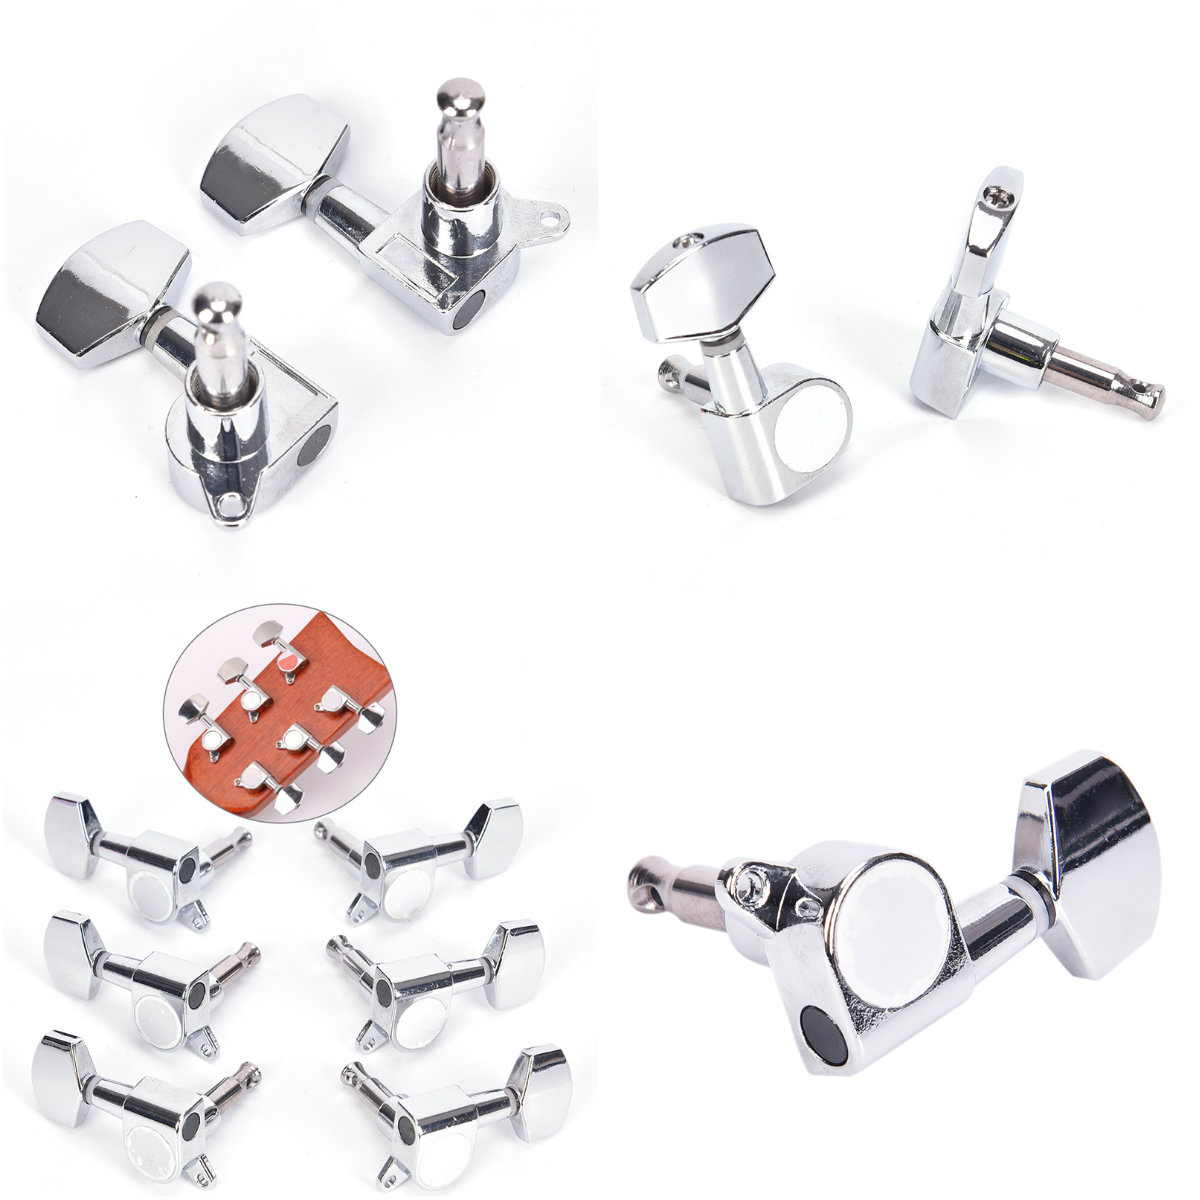 guitar sealed small peg for acoustic electric guitar guitar parts with logo tuning pegs tuner. Black Bedroom Furniture Sets. Home Design Ideas